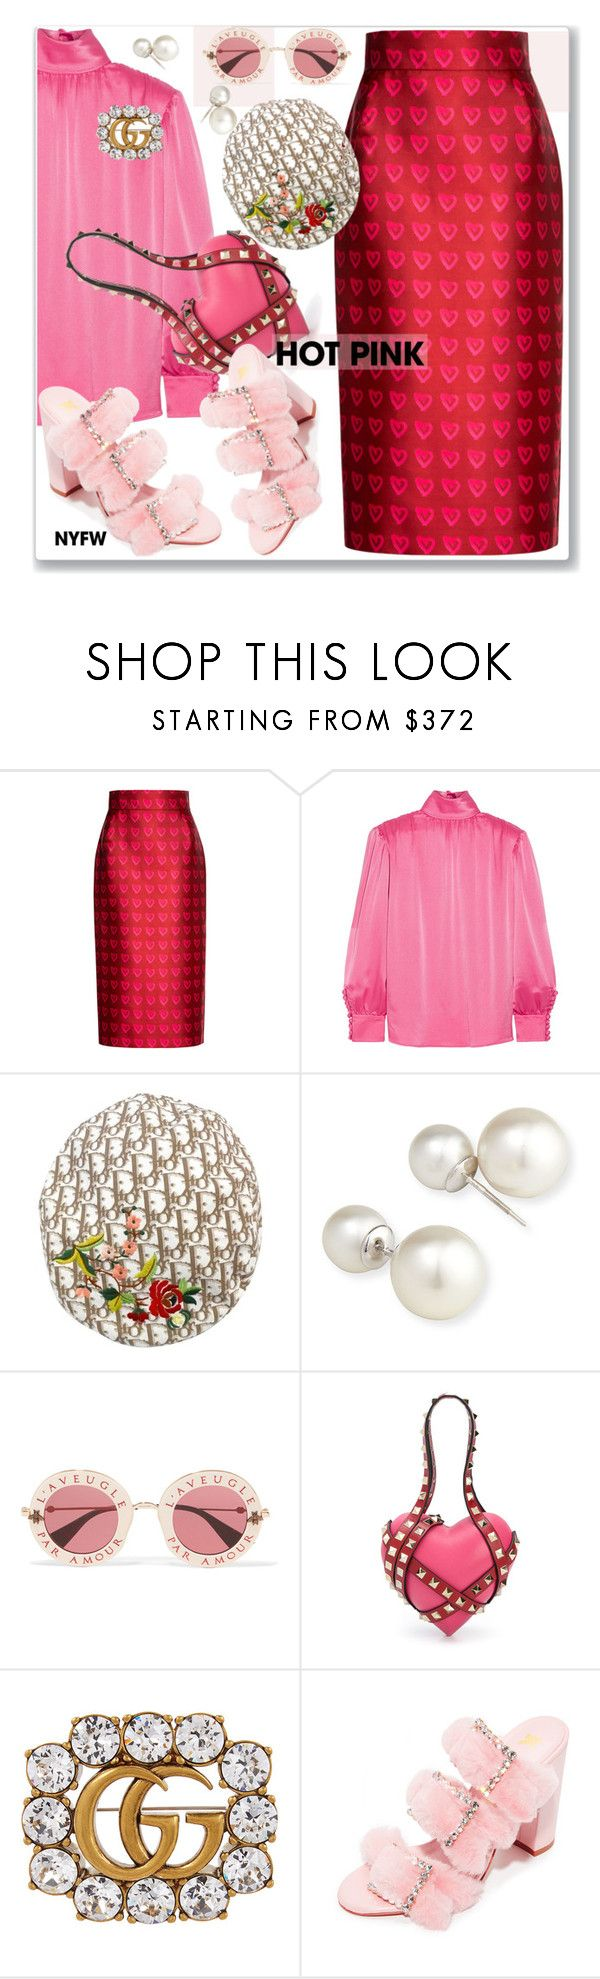 """""""Pink"""" by nantucketteabook ❤ liked on Polyvore featuring Gucci, Christian Dior, Yoko London, Valentino, Kalda, contestentry and NYFWHotPink"""